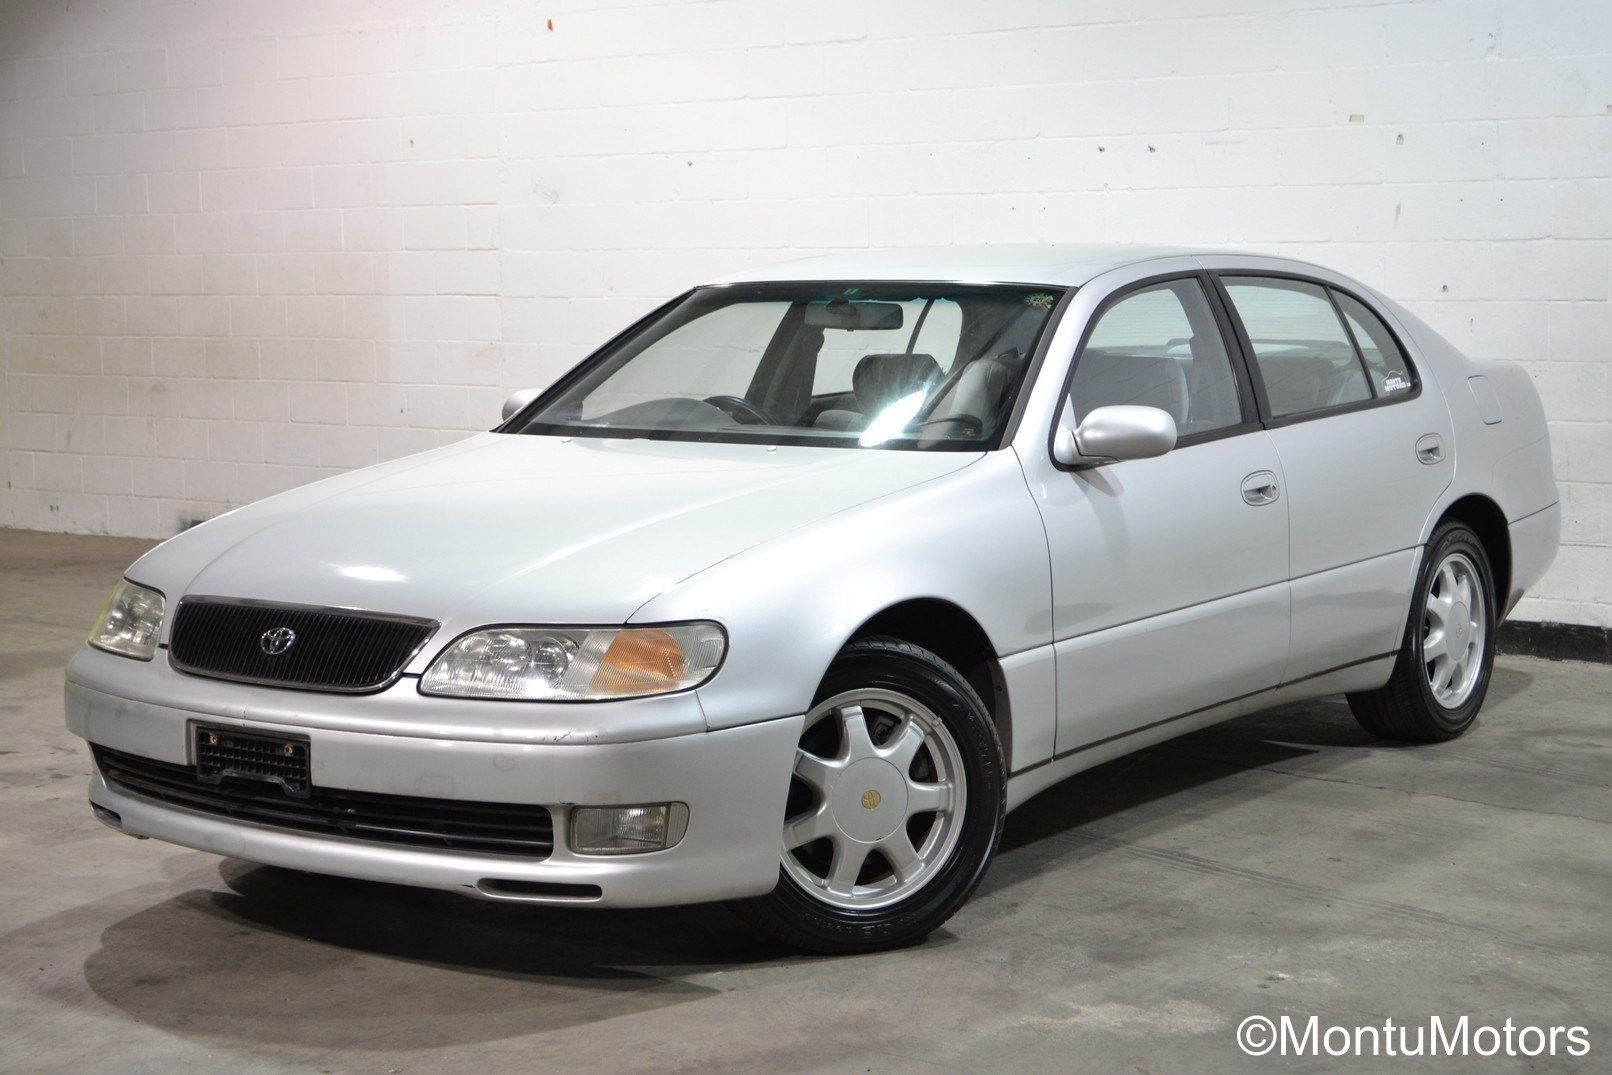 Toyota Aristo with only 16,500 miles on the clock. It's a baby! #montumotors